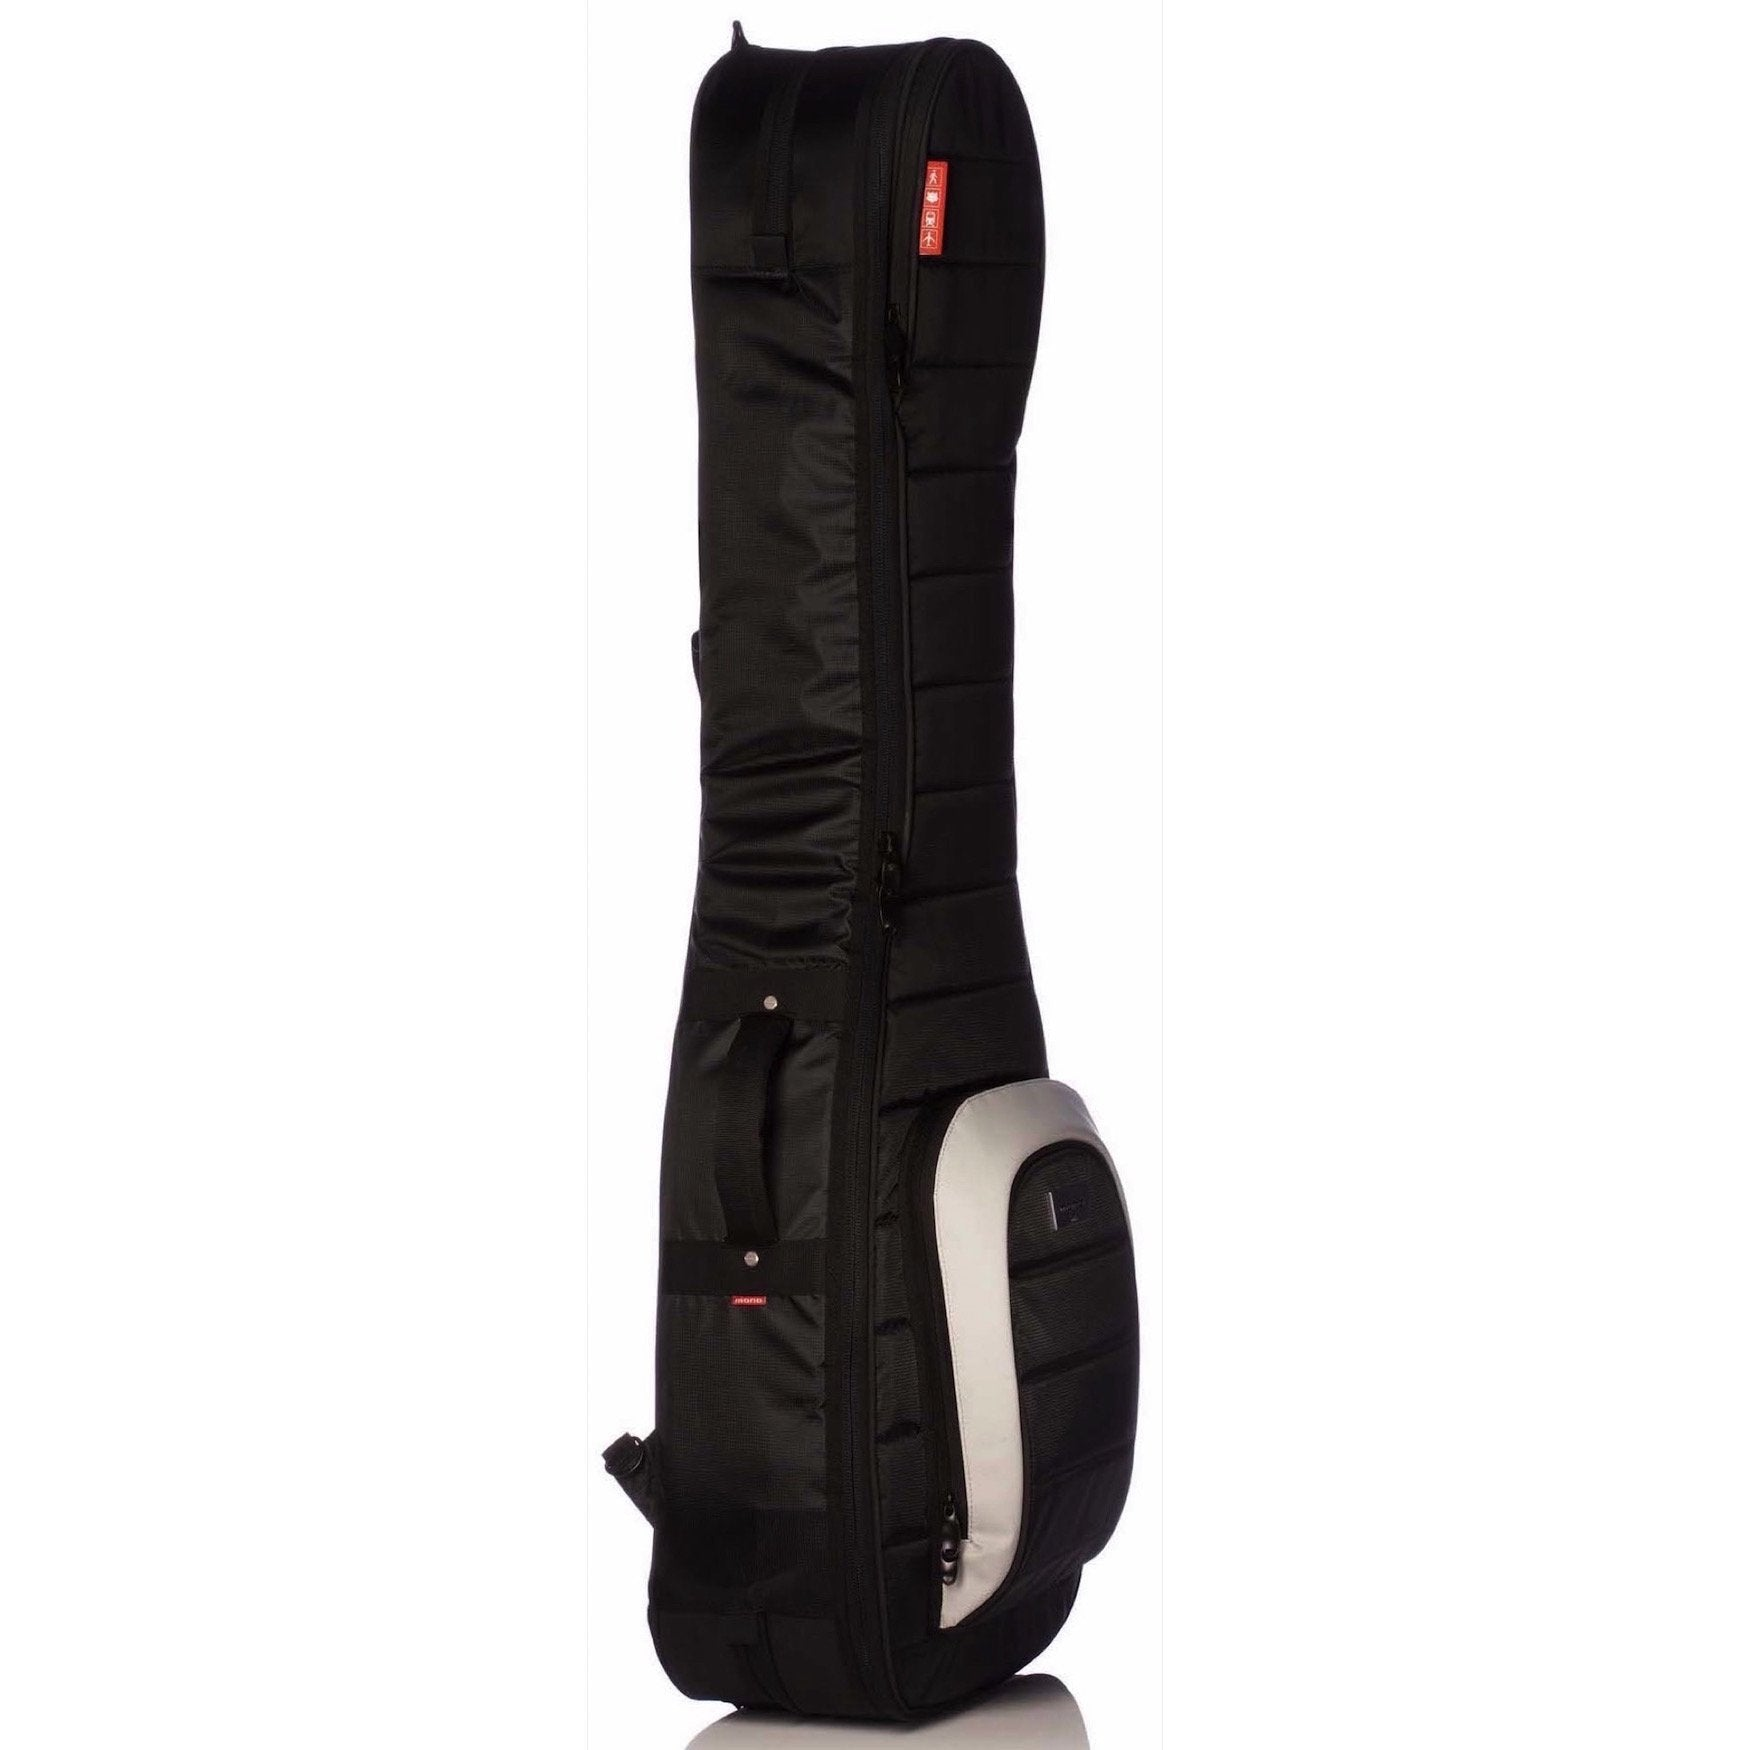 Mono M80 Dual Electric Bass Case, Jet Black